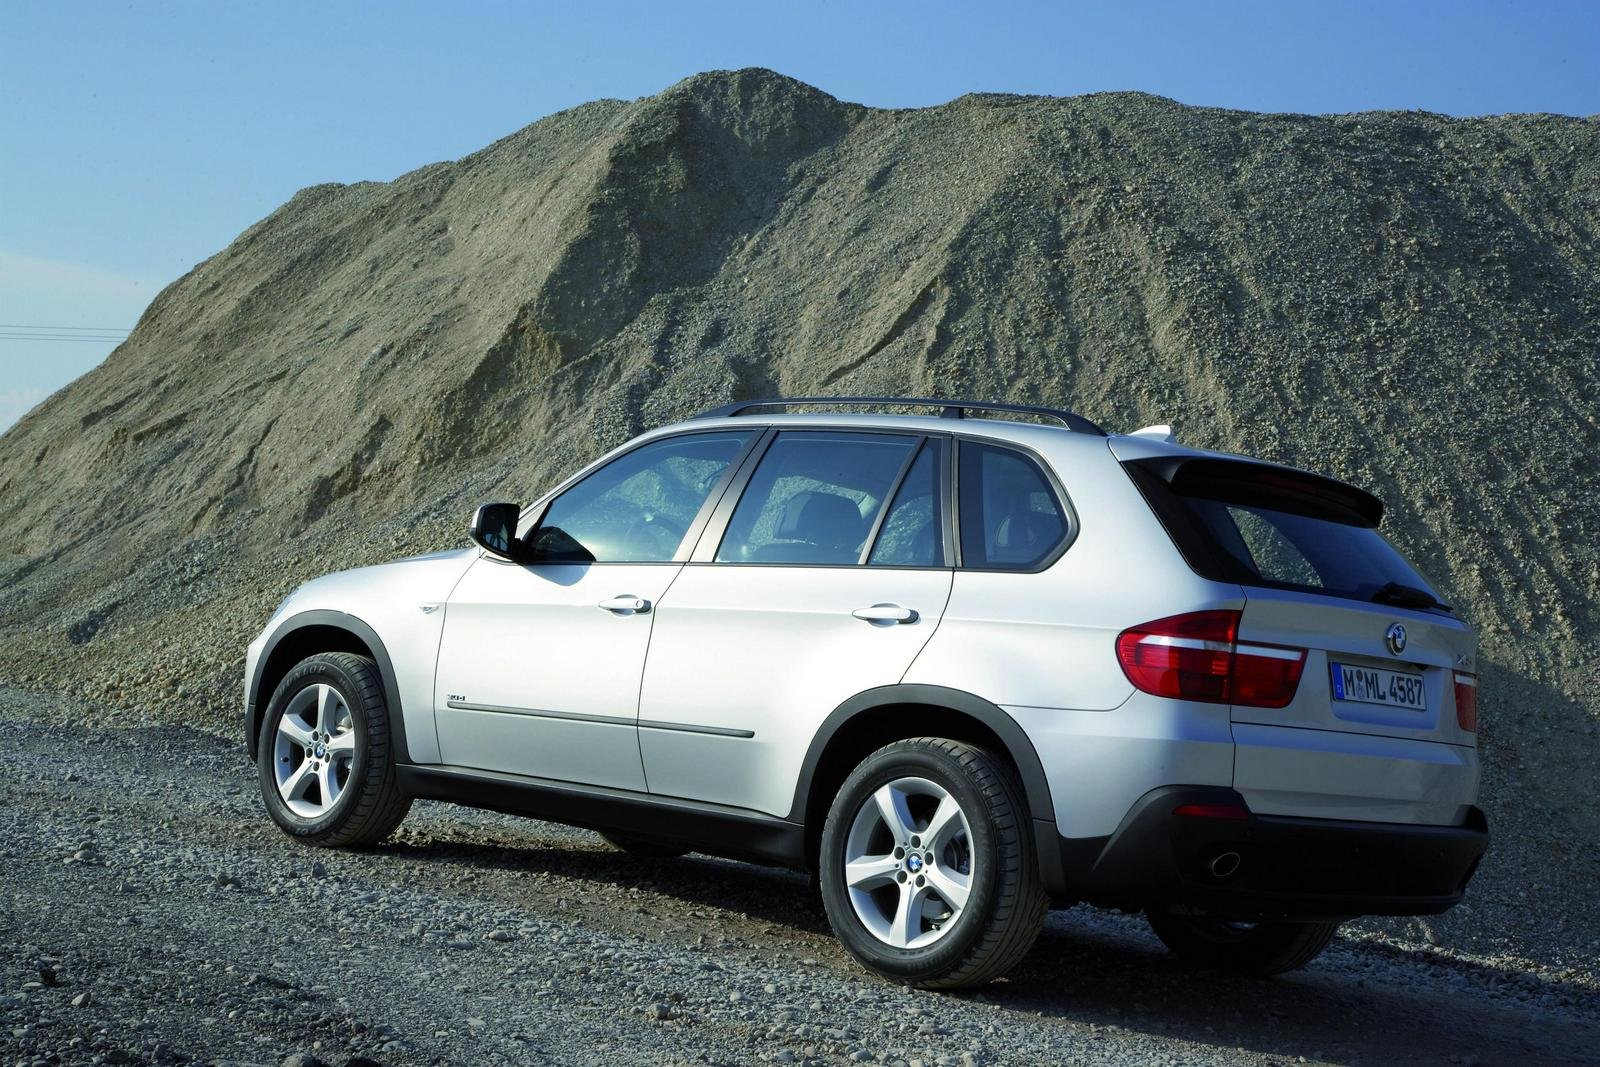 2008 bmw x5 picture 195848 car review top speed. Black Bedroom Furniture Sets. Home Design Ideas